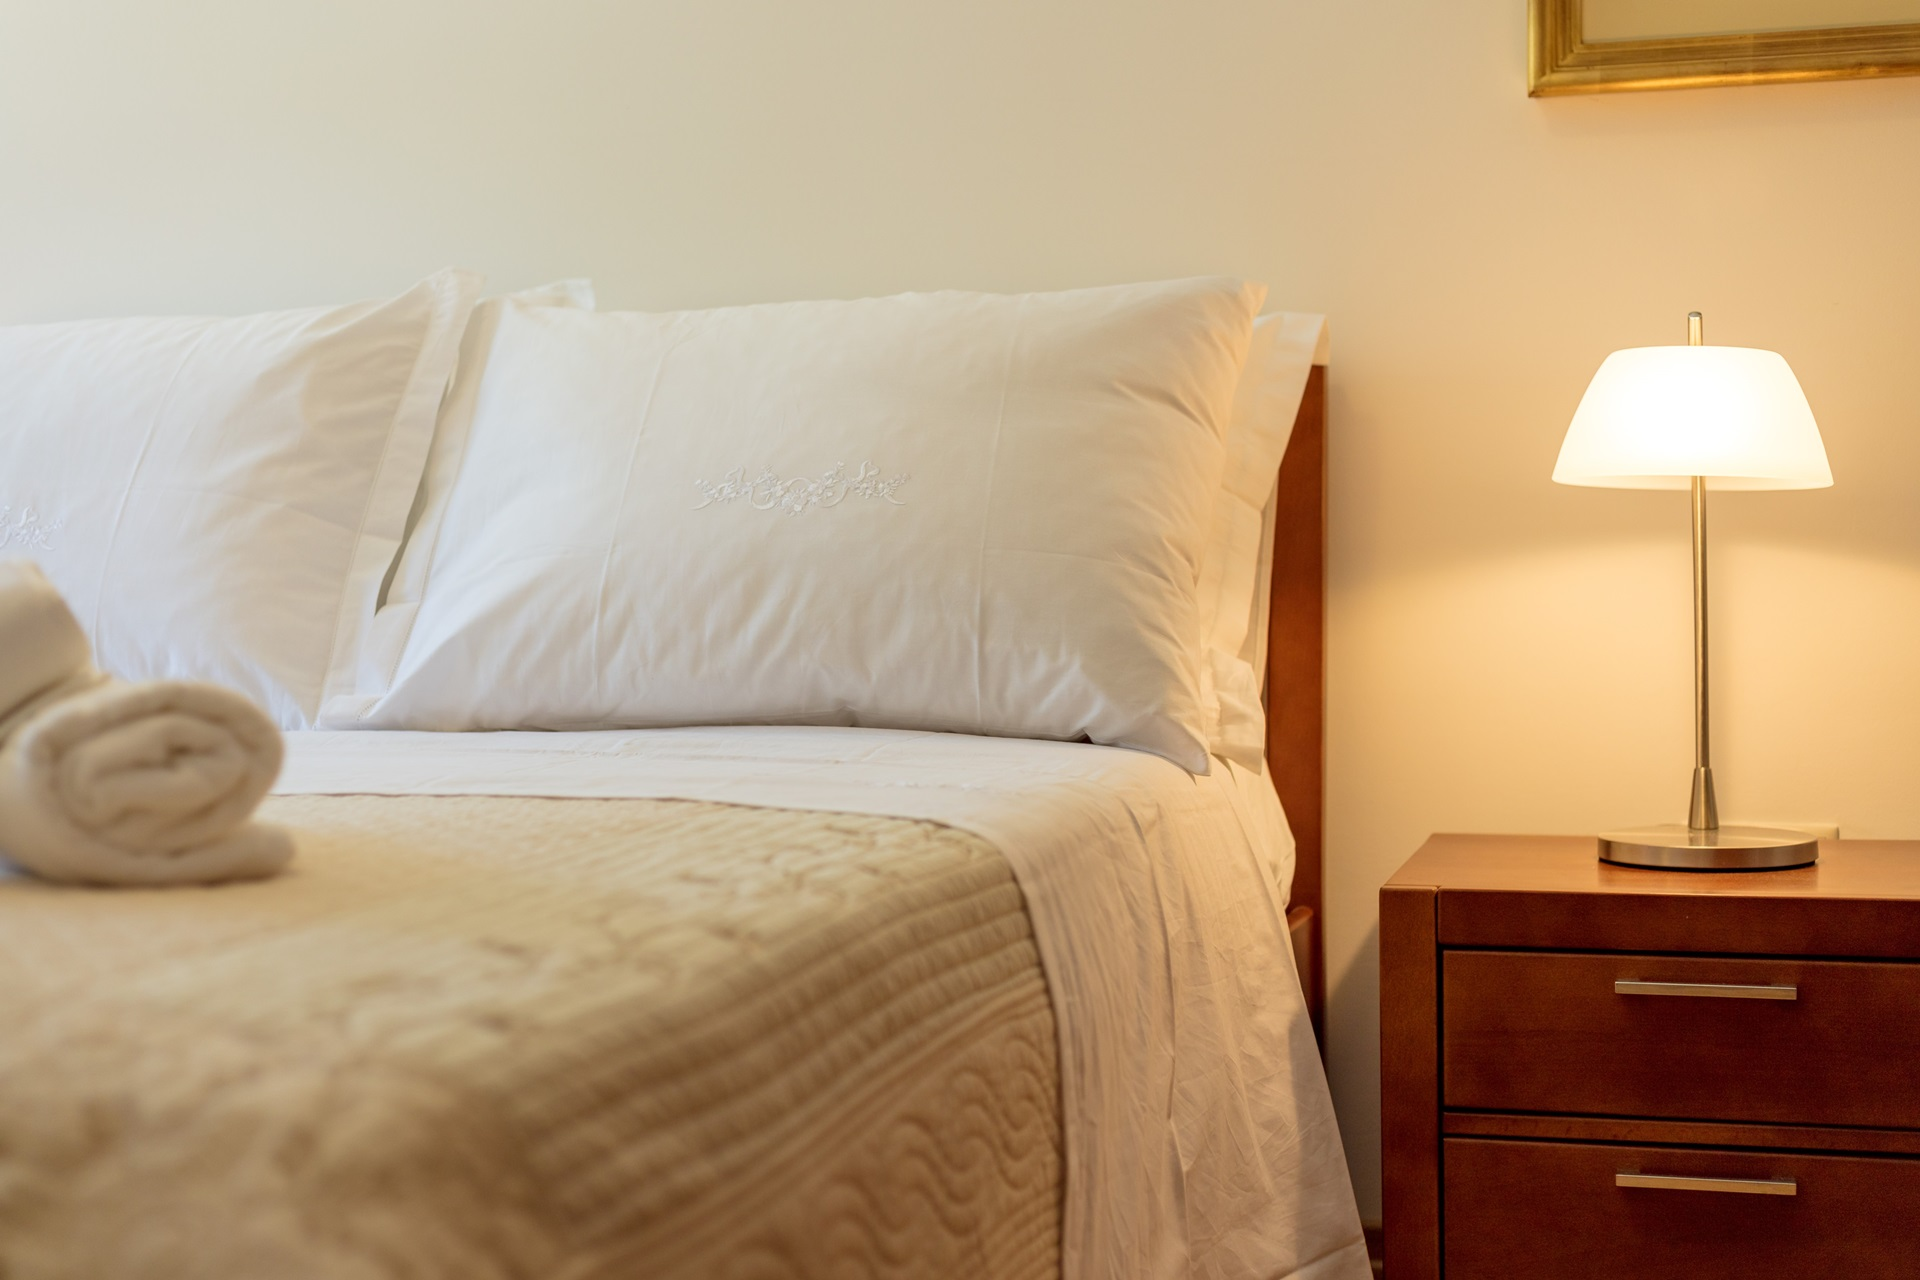 Soft pillow on a comfortable bed in the bedroom of the Villa Roglic and nightstand with the lamp